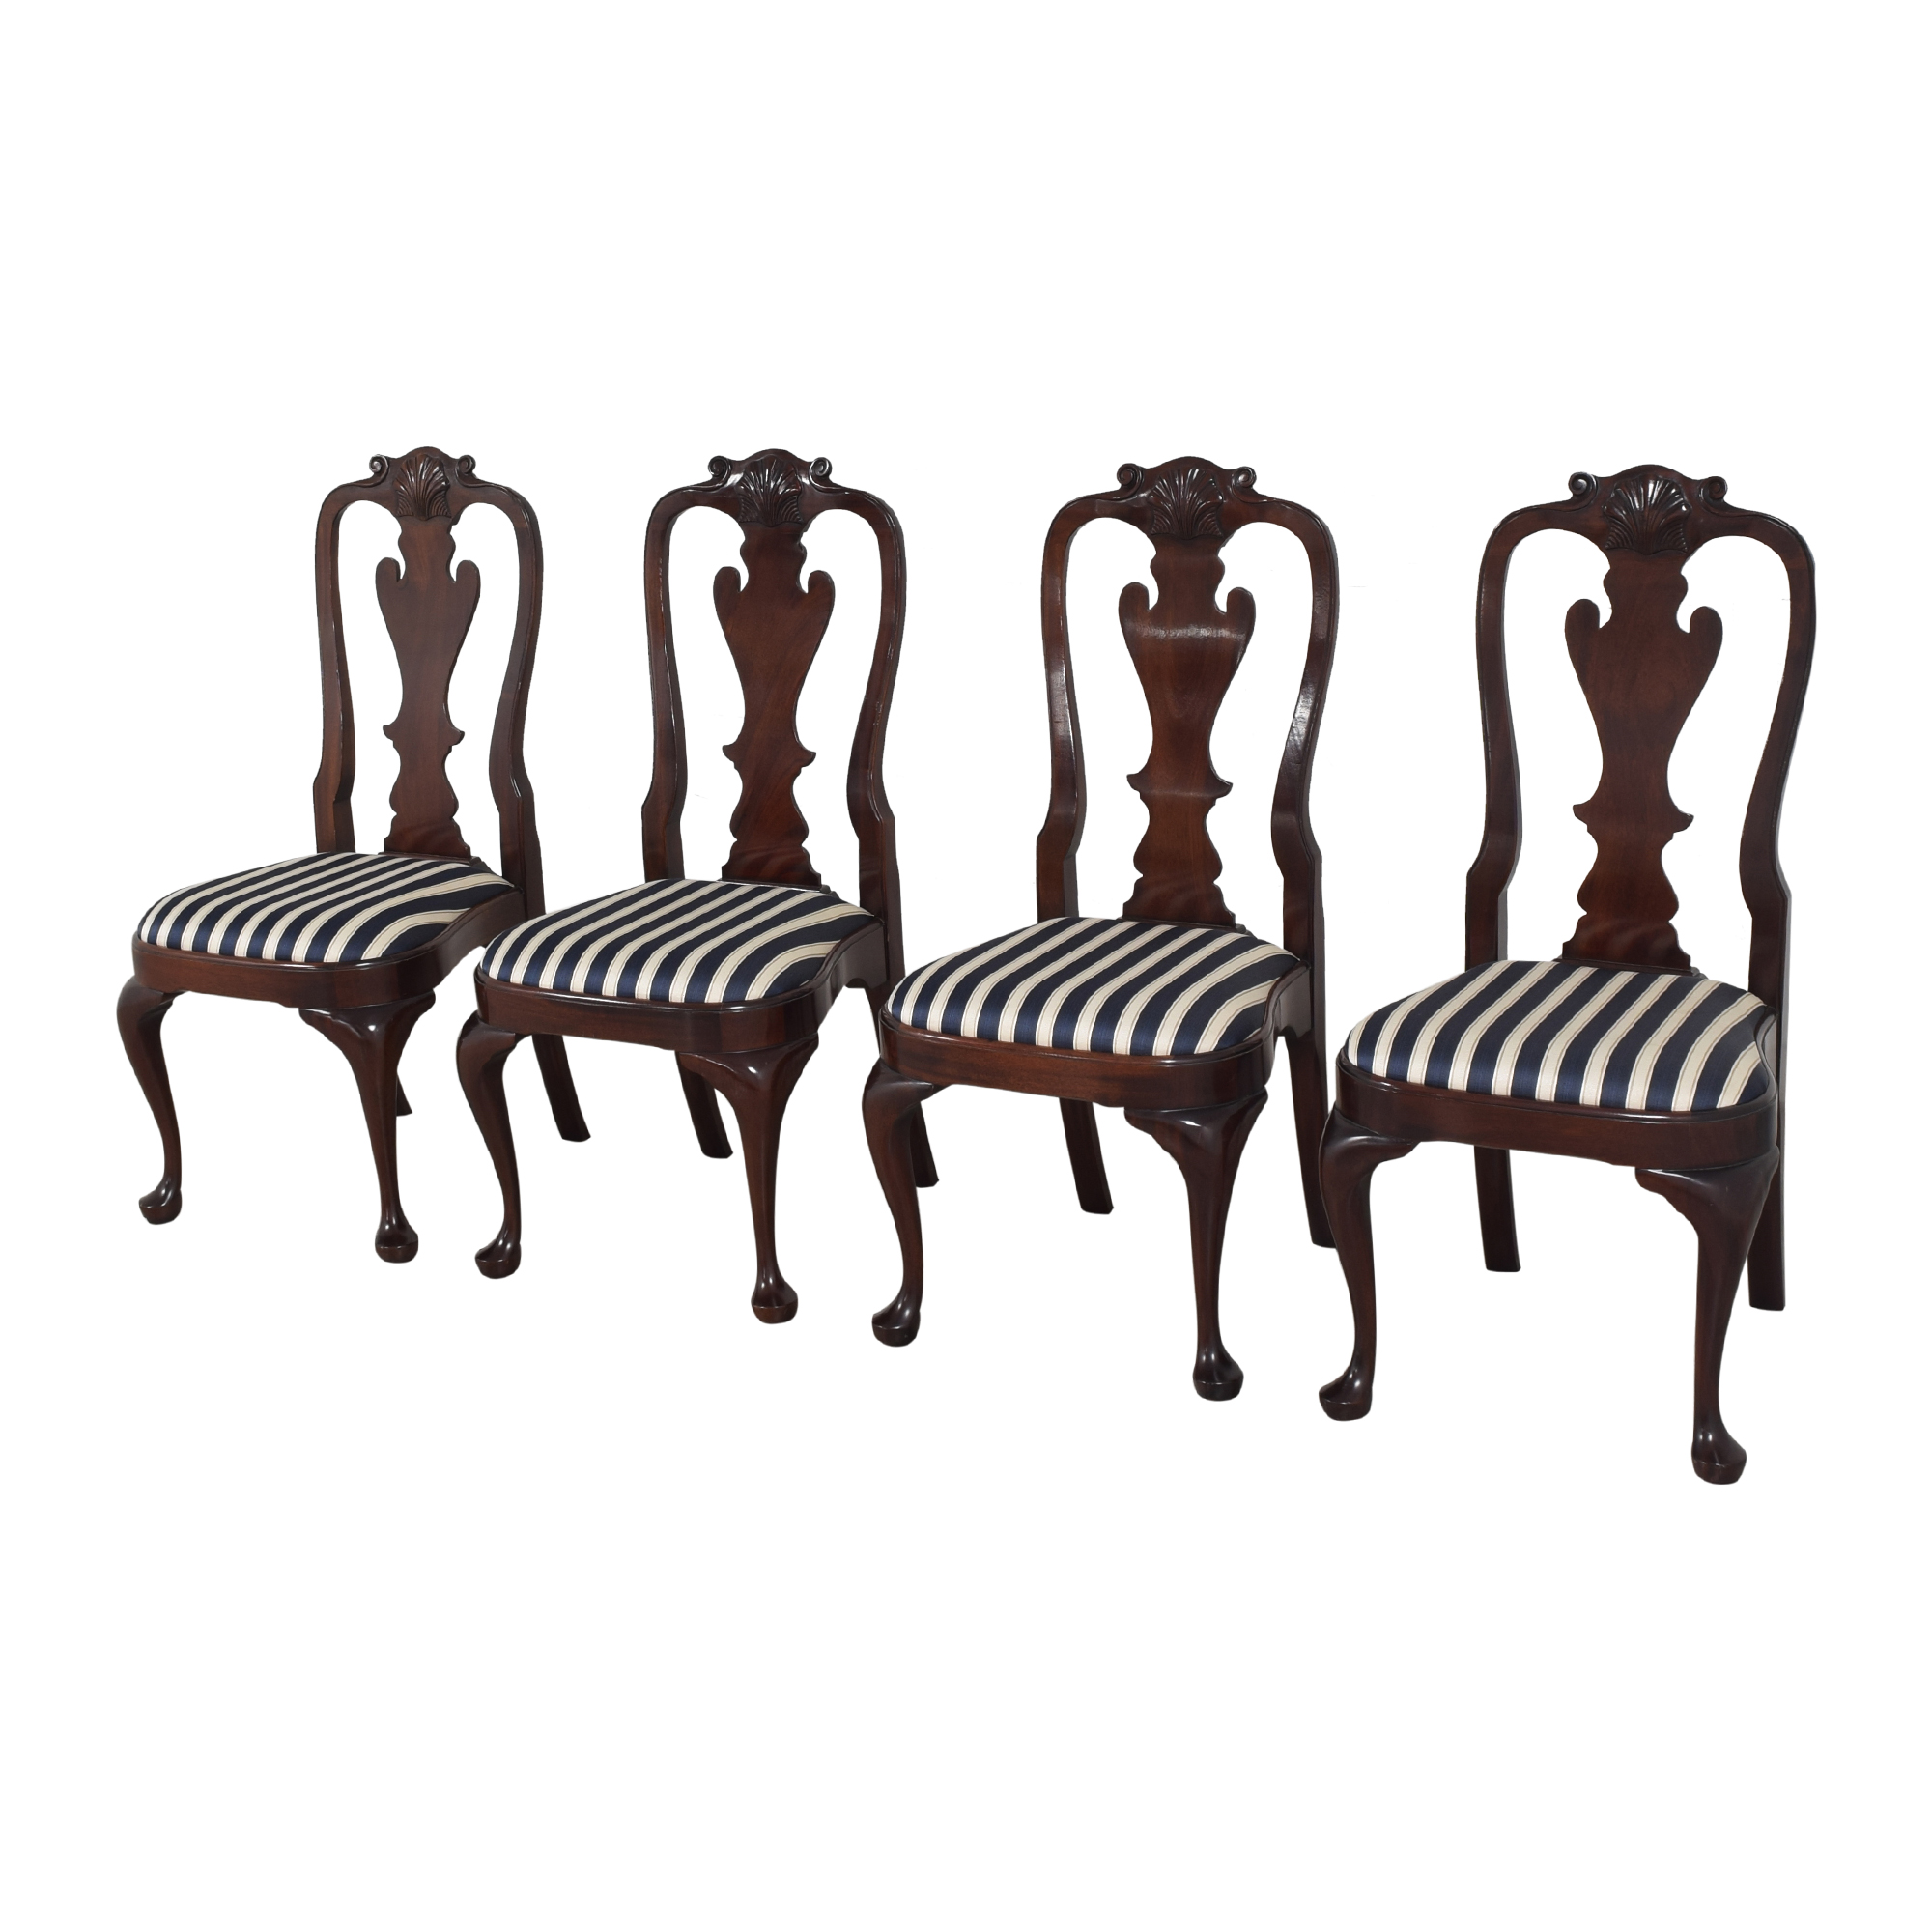 Stickley Furniture Stickley Furniture Queen Anne-Style Dining Chairs discount